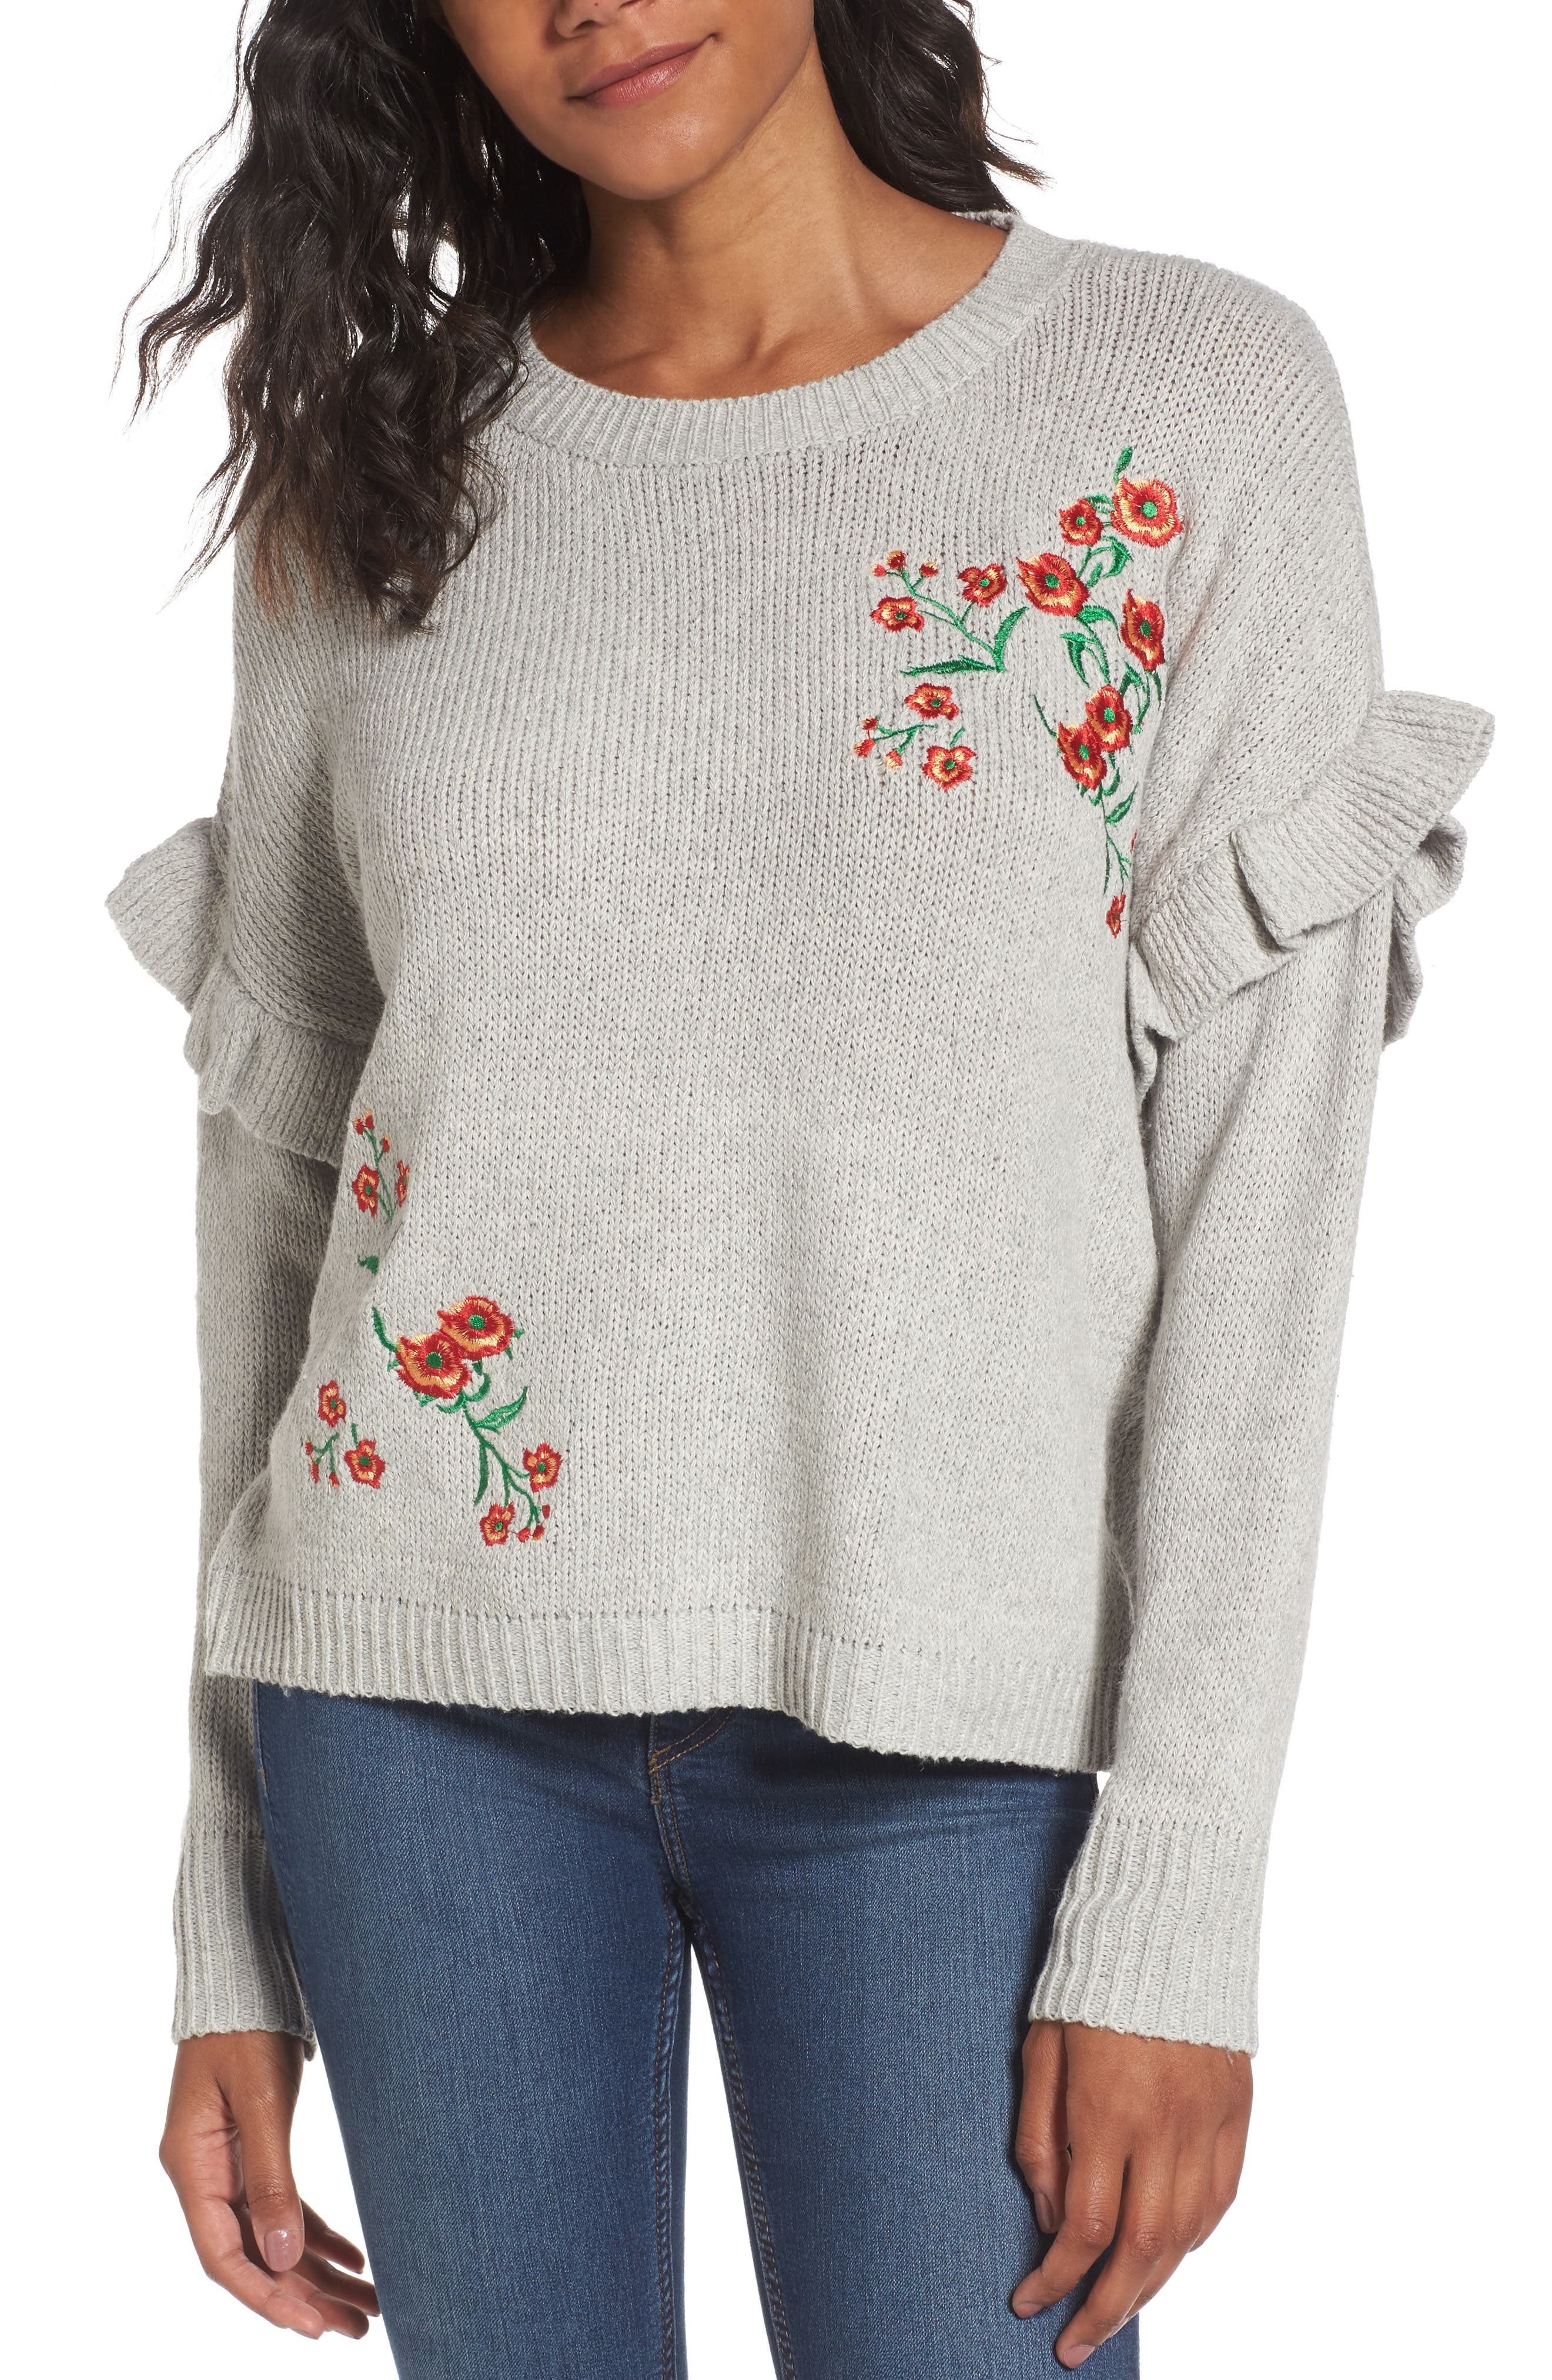 Woven Heart Ruffle Sleeve Embroidered Sweater